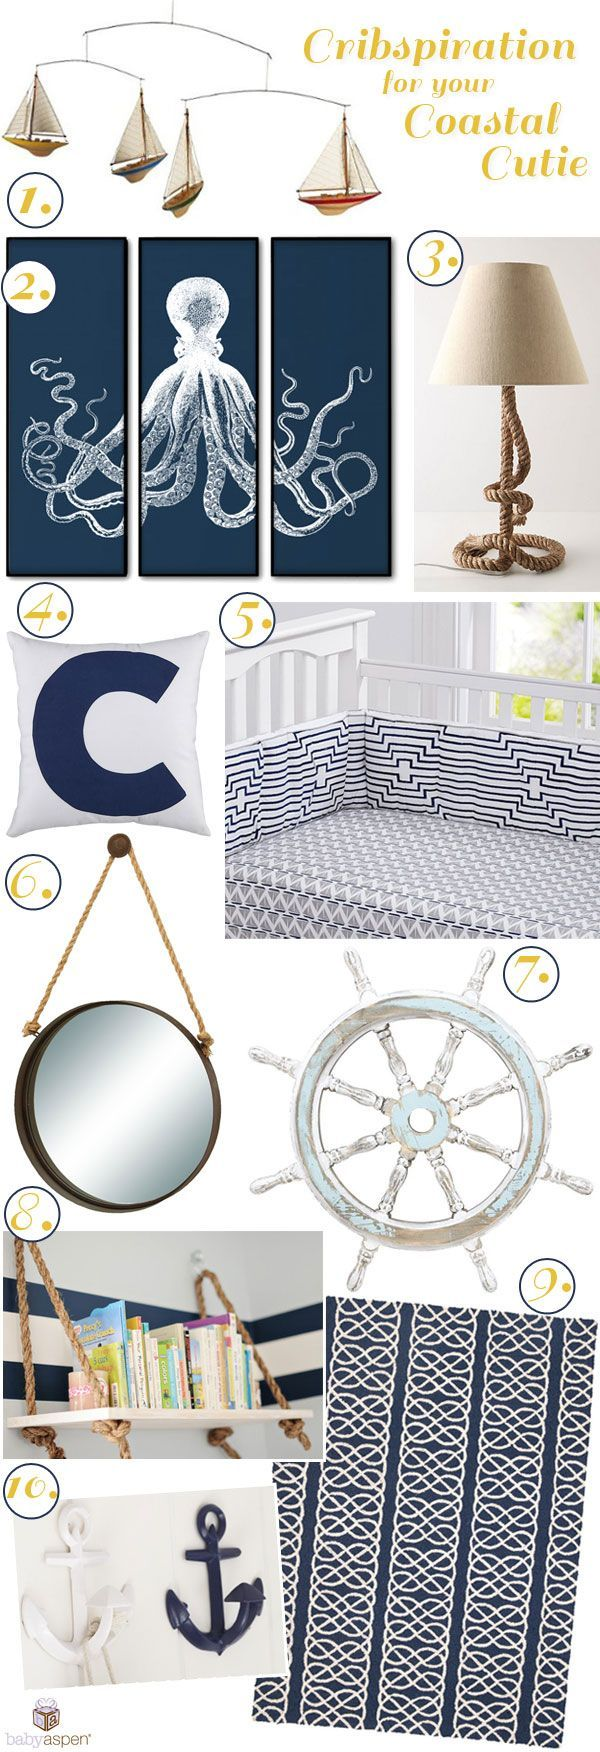 Nautical Nursery Ideas | Nursery Inspiration | Navy Nursery | Baby Aspen | http://babyaspen.com | http://blog.babyaspen.com | #cribspiration #babyaspen #nautical